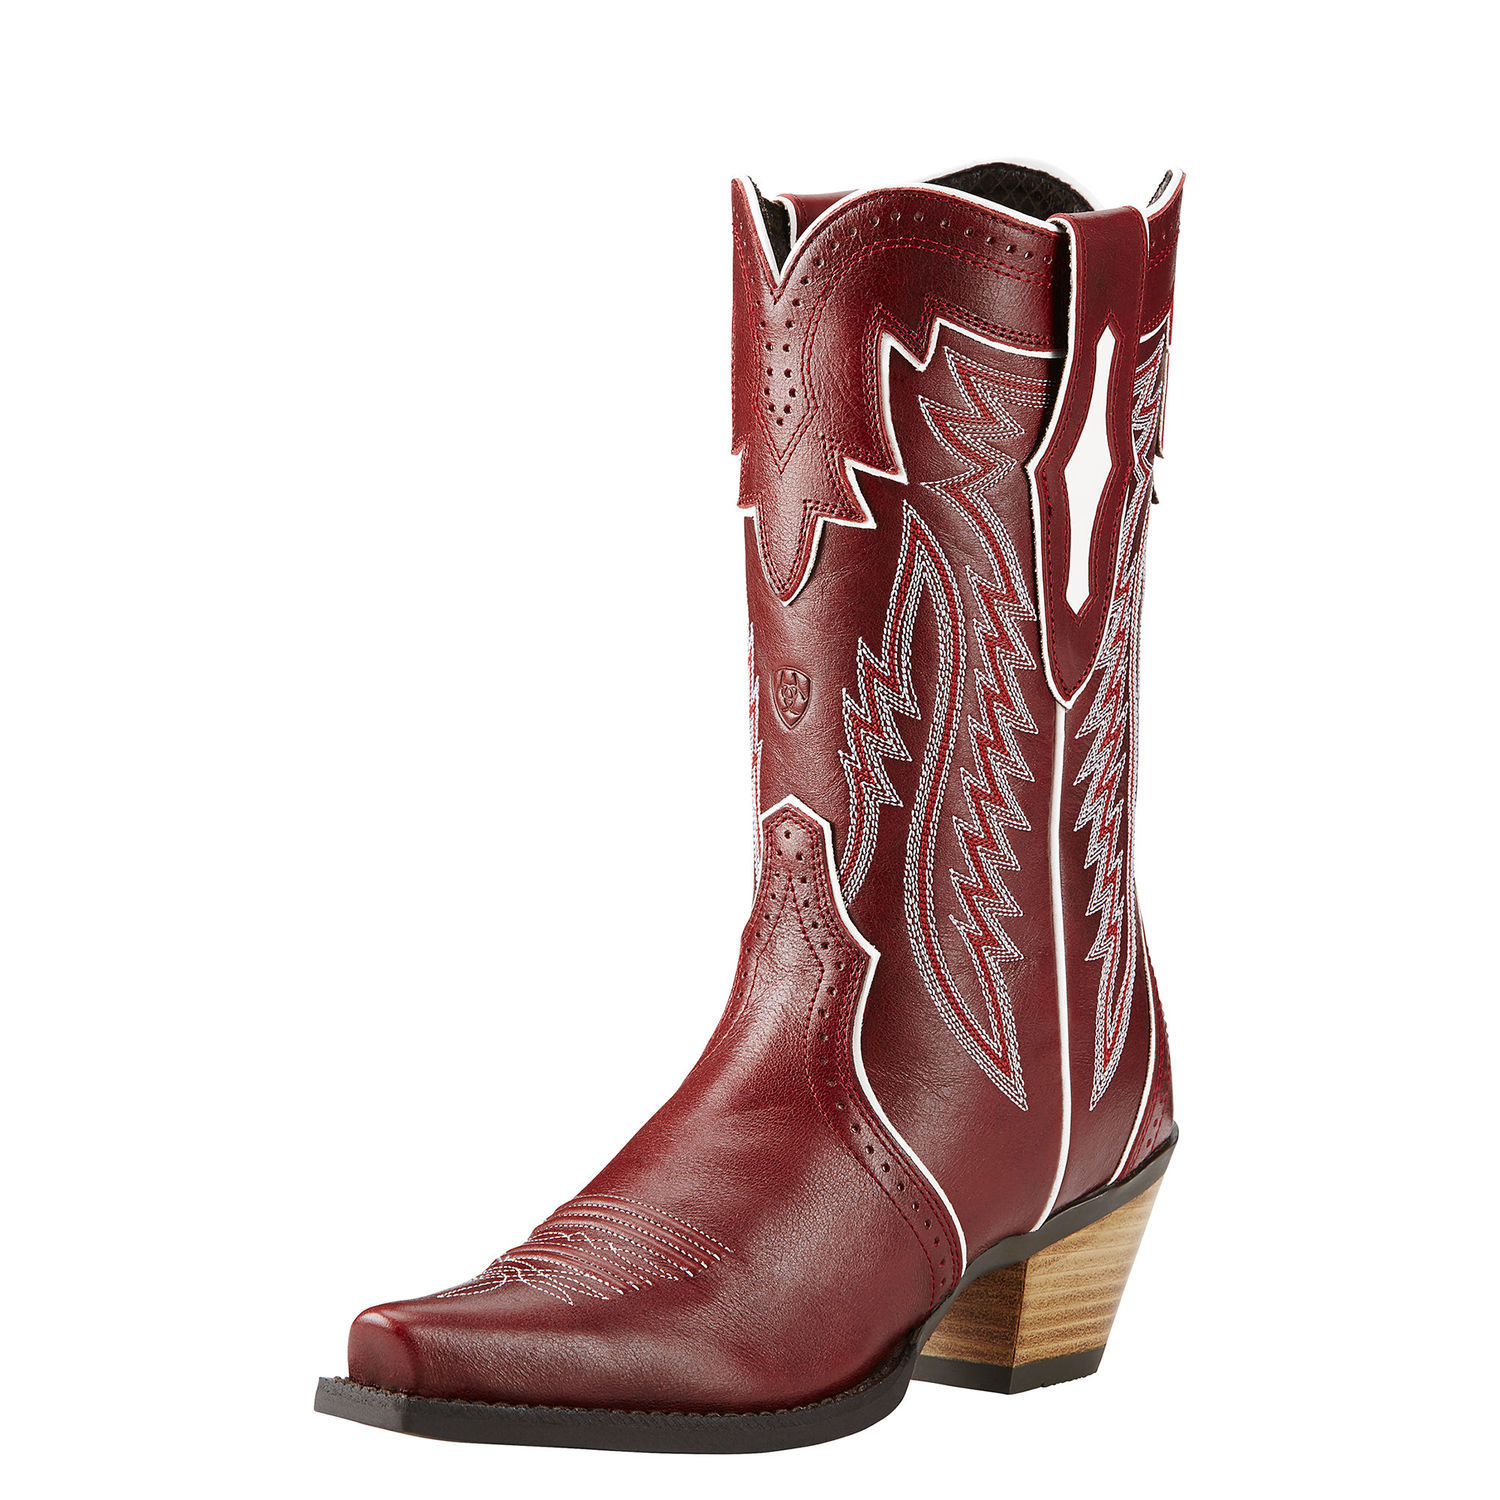 Ariat Calamity Square Toe Leather Western Boot by Ariat